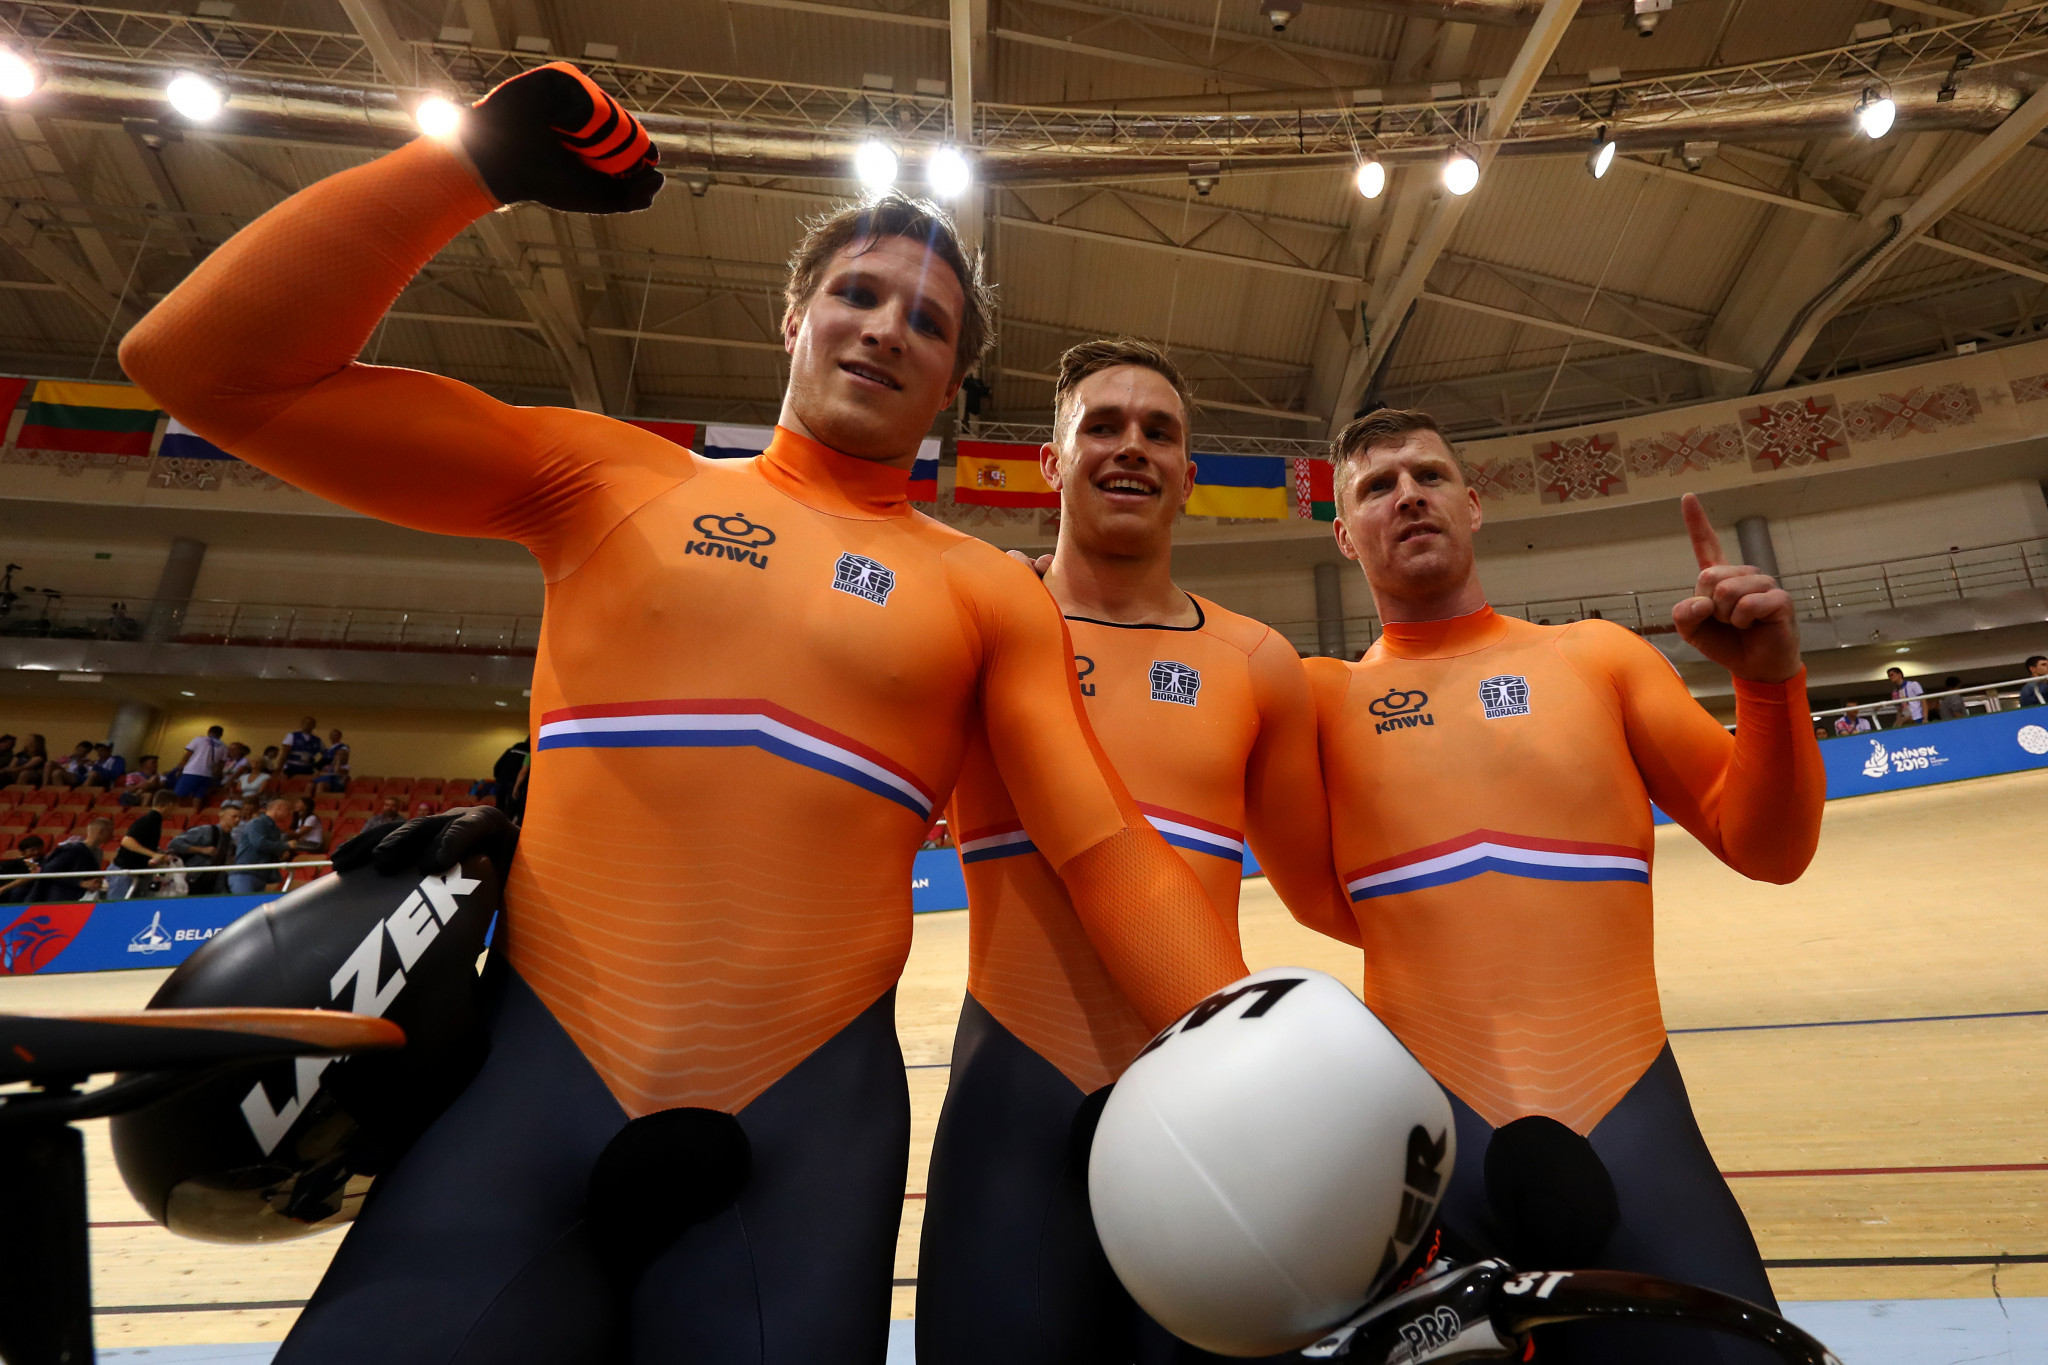 Four nations win gold as track cycling starts at 2nd European Games in Minsk